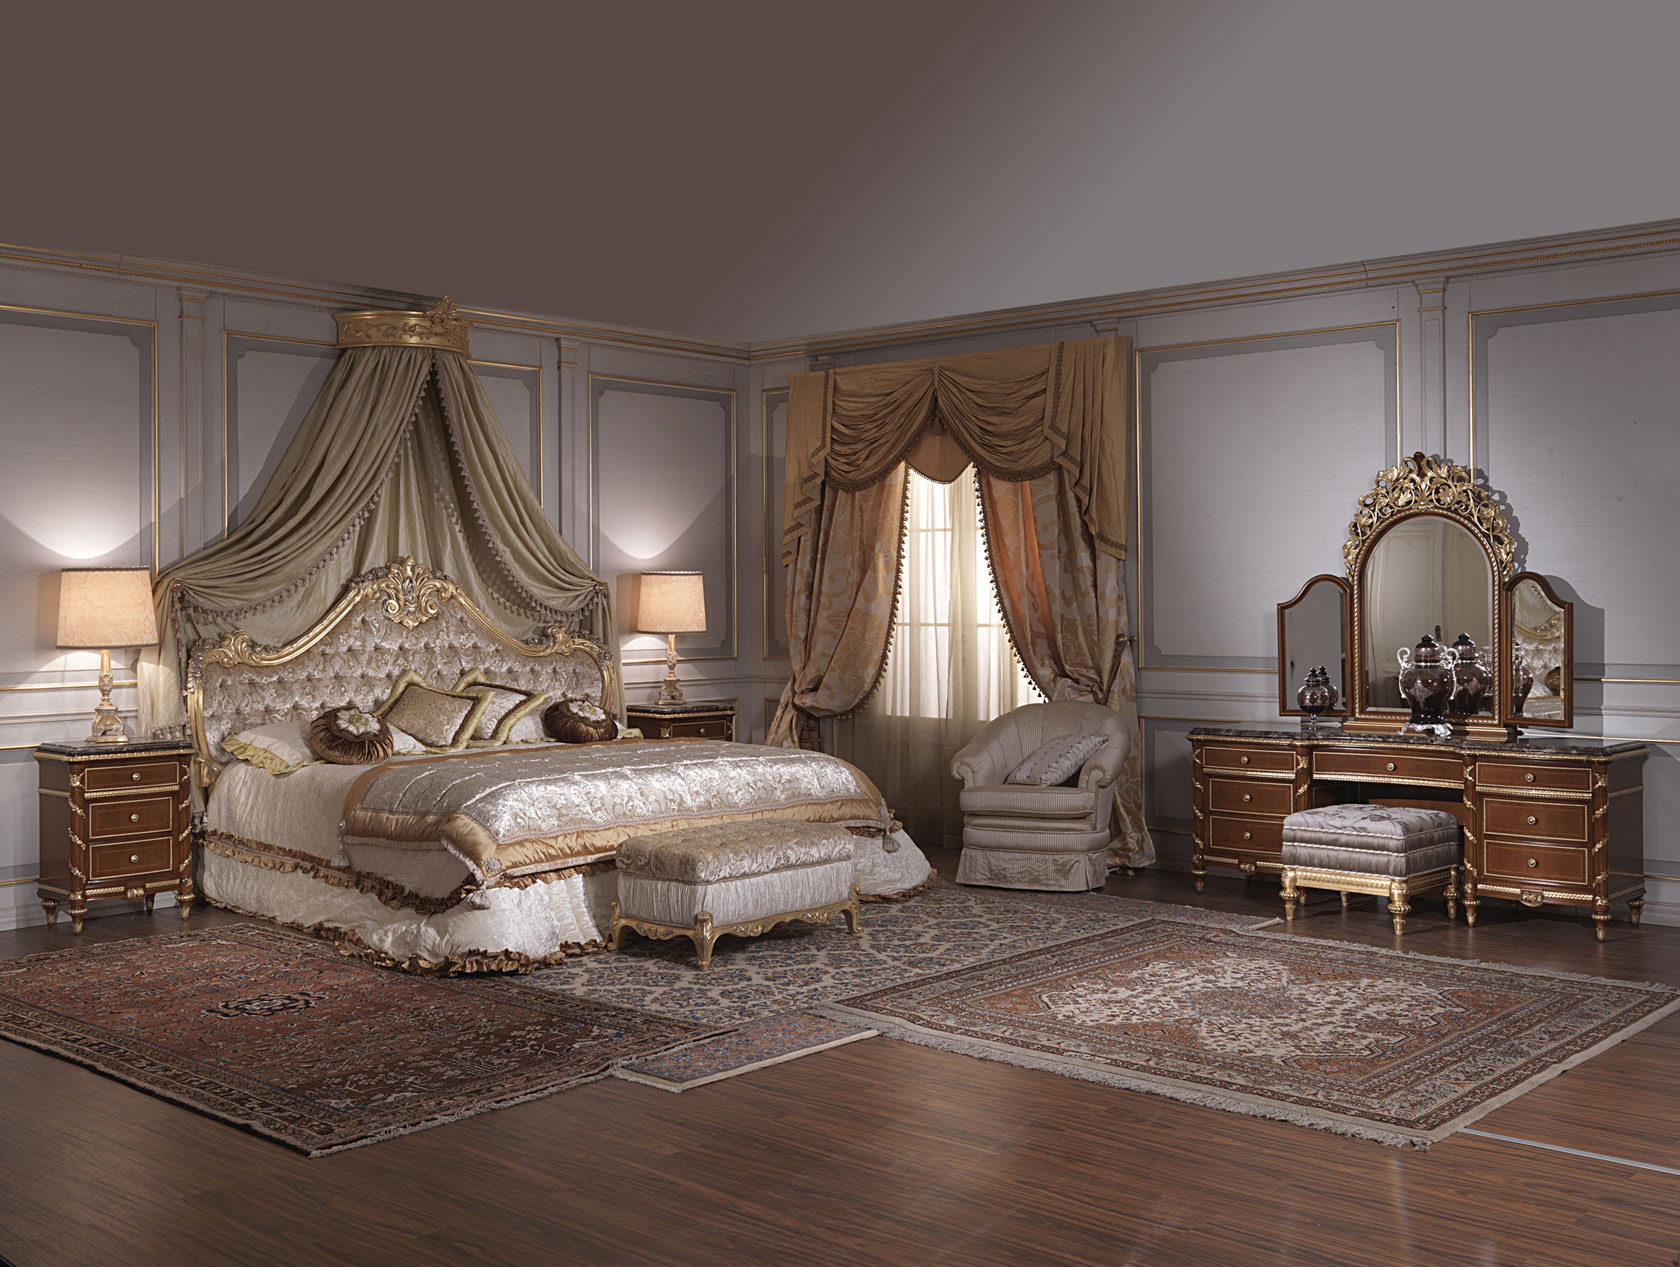 Image Result For Chambre Style Baroque